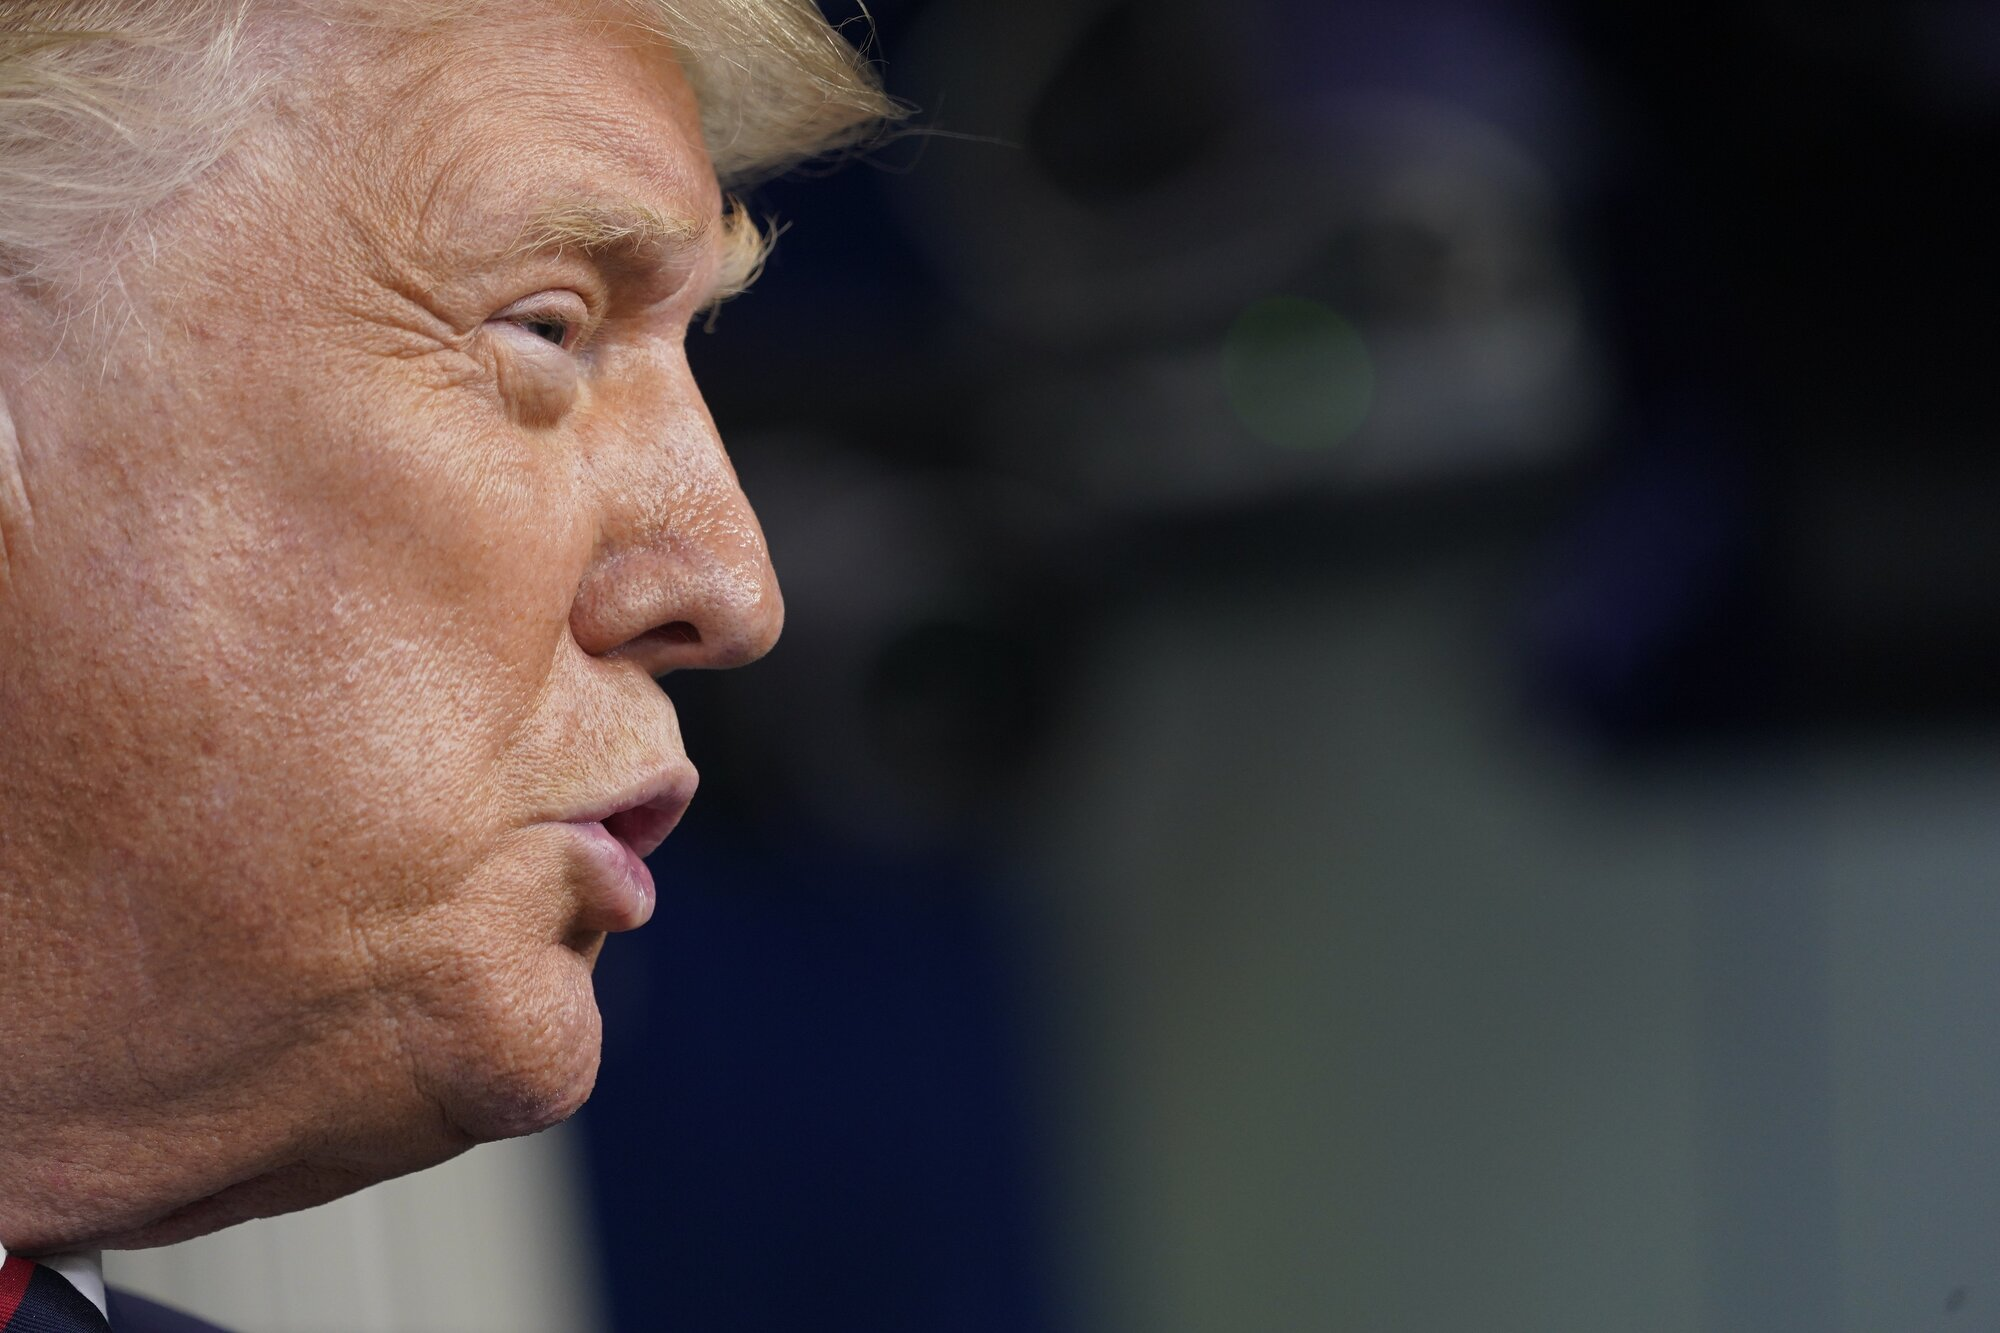 Trump is banned permanently from Facebook